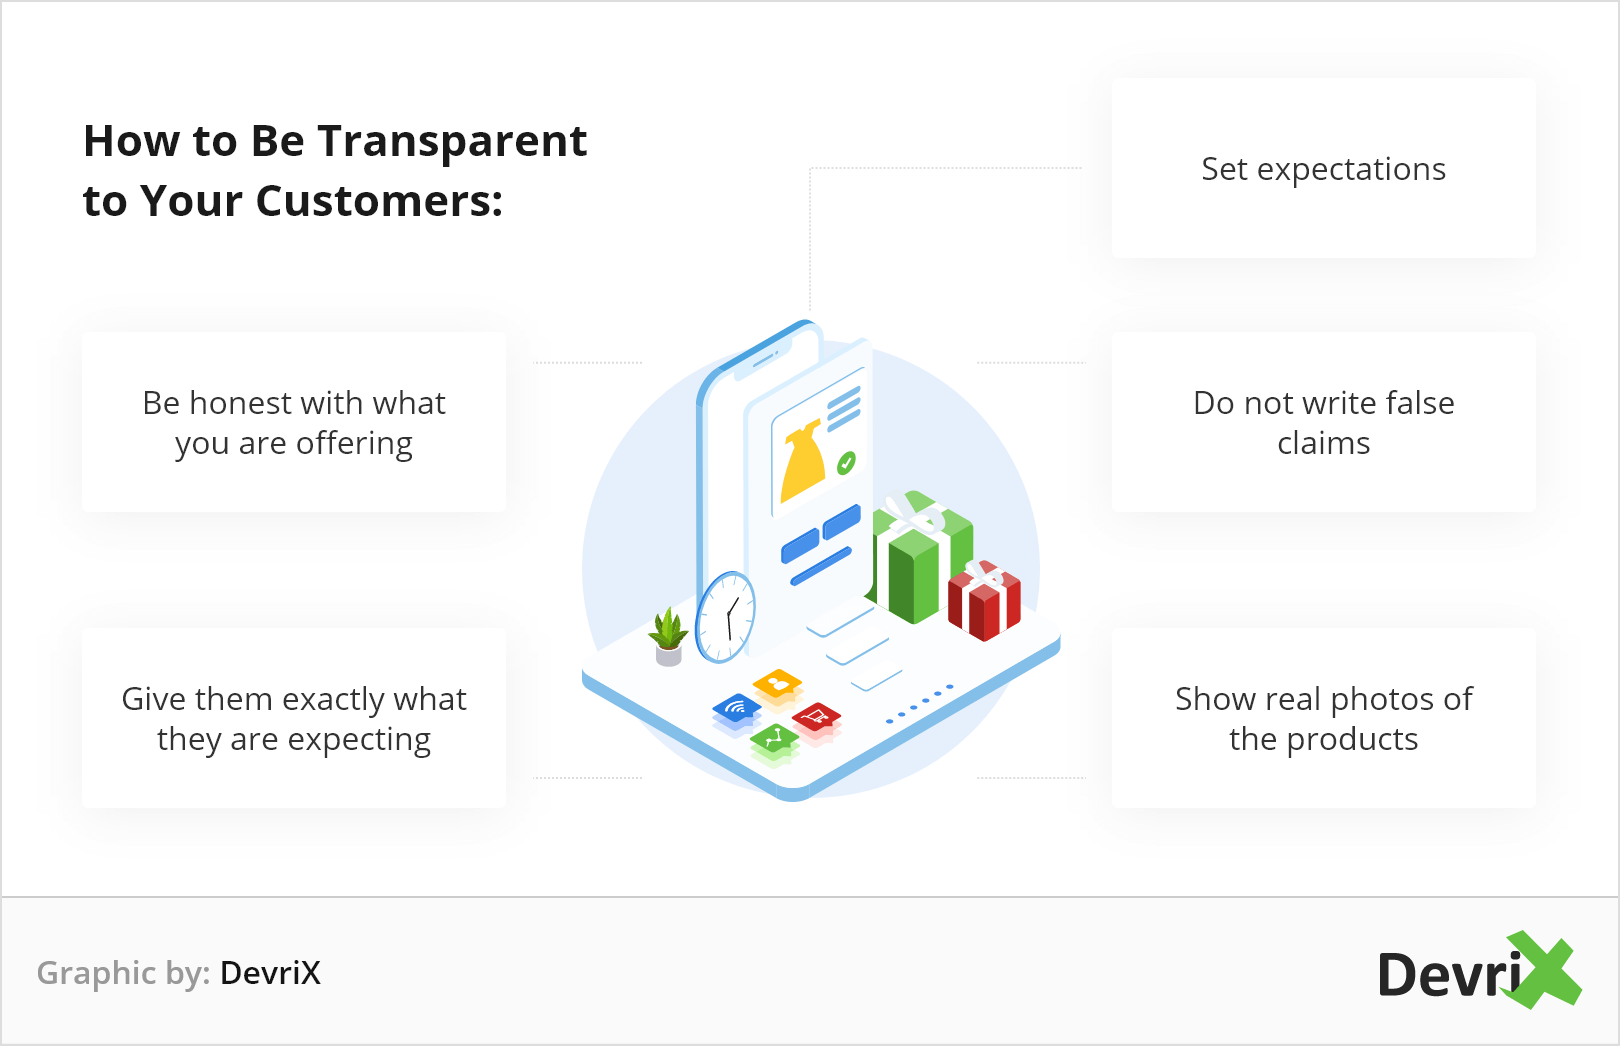 How to be Transparent to your Customers: